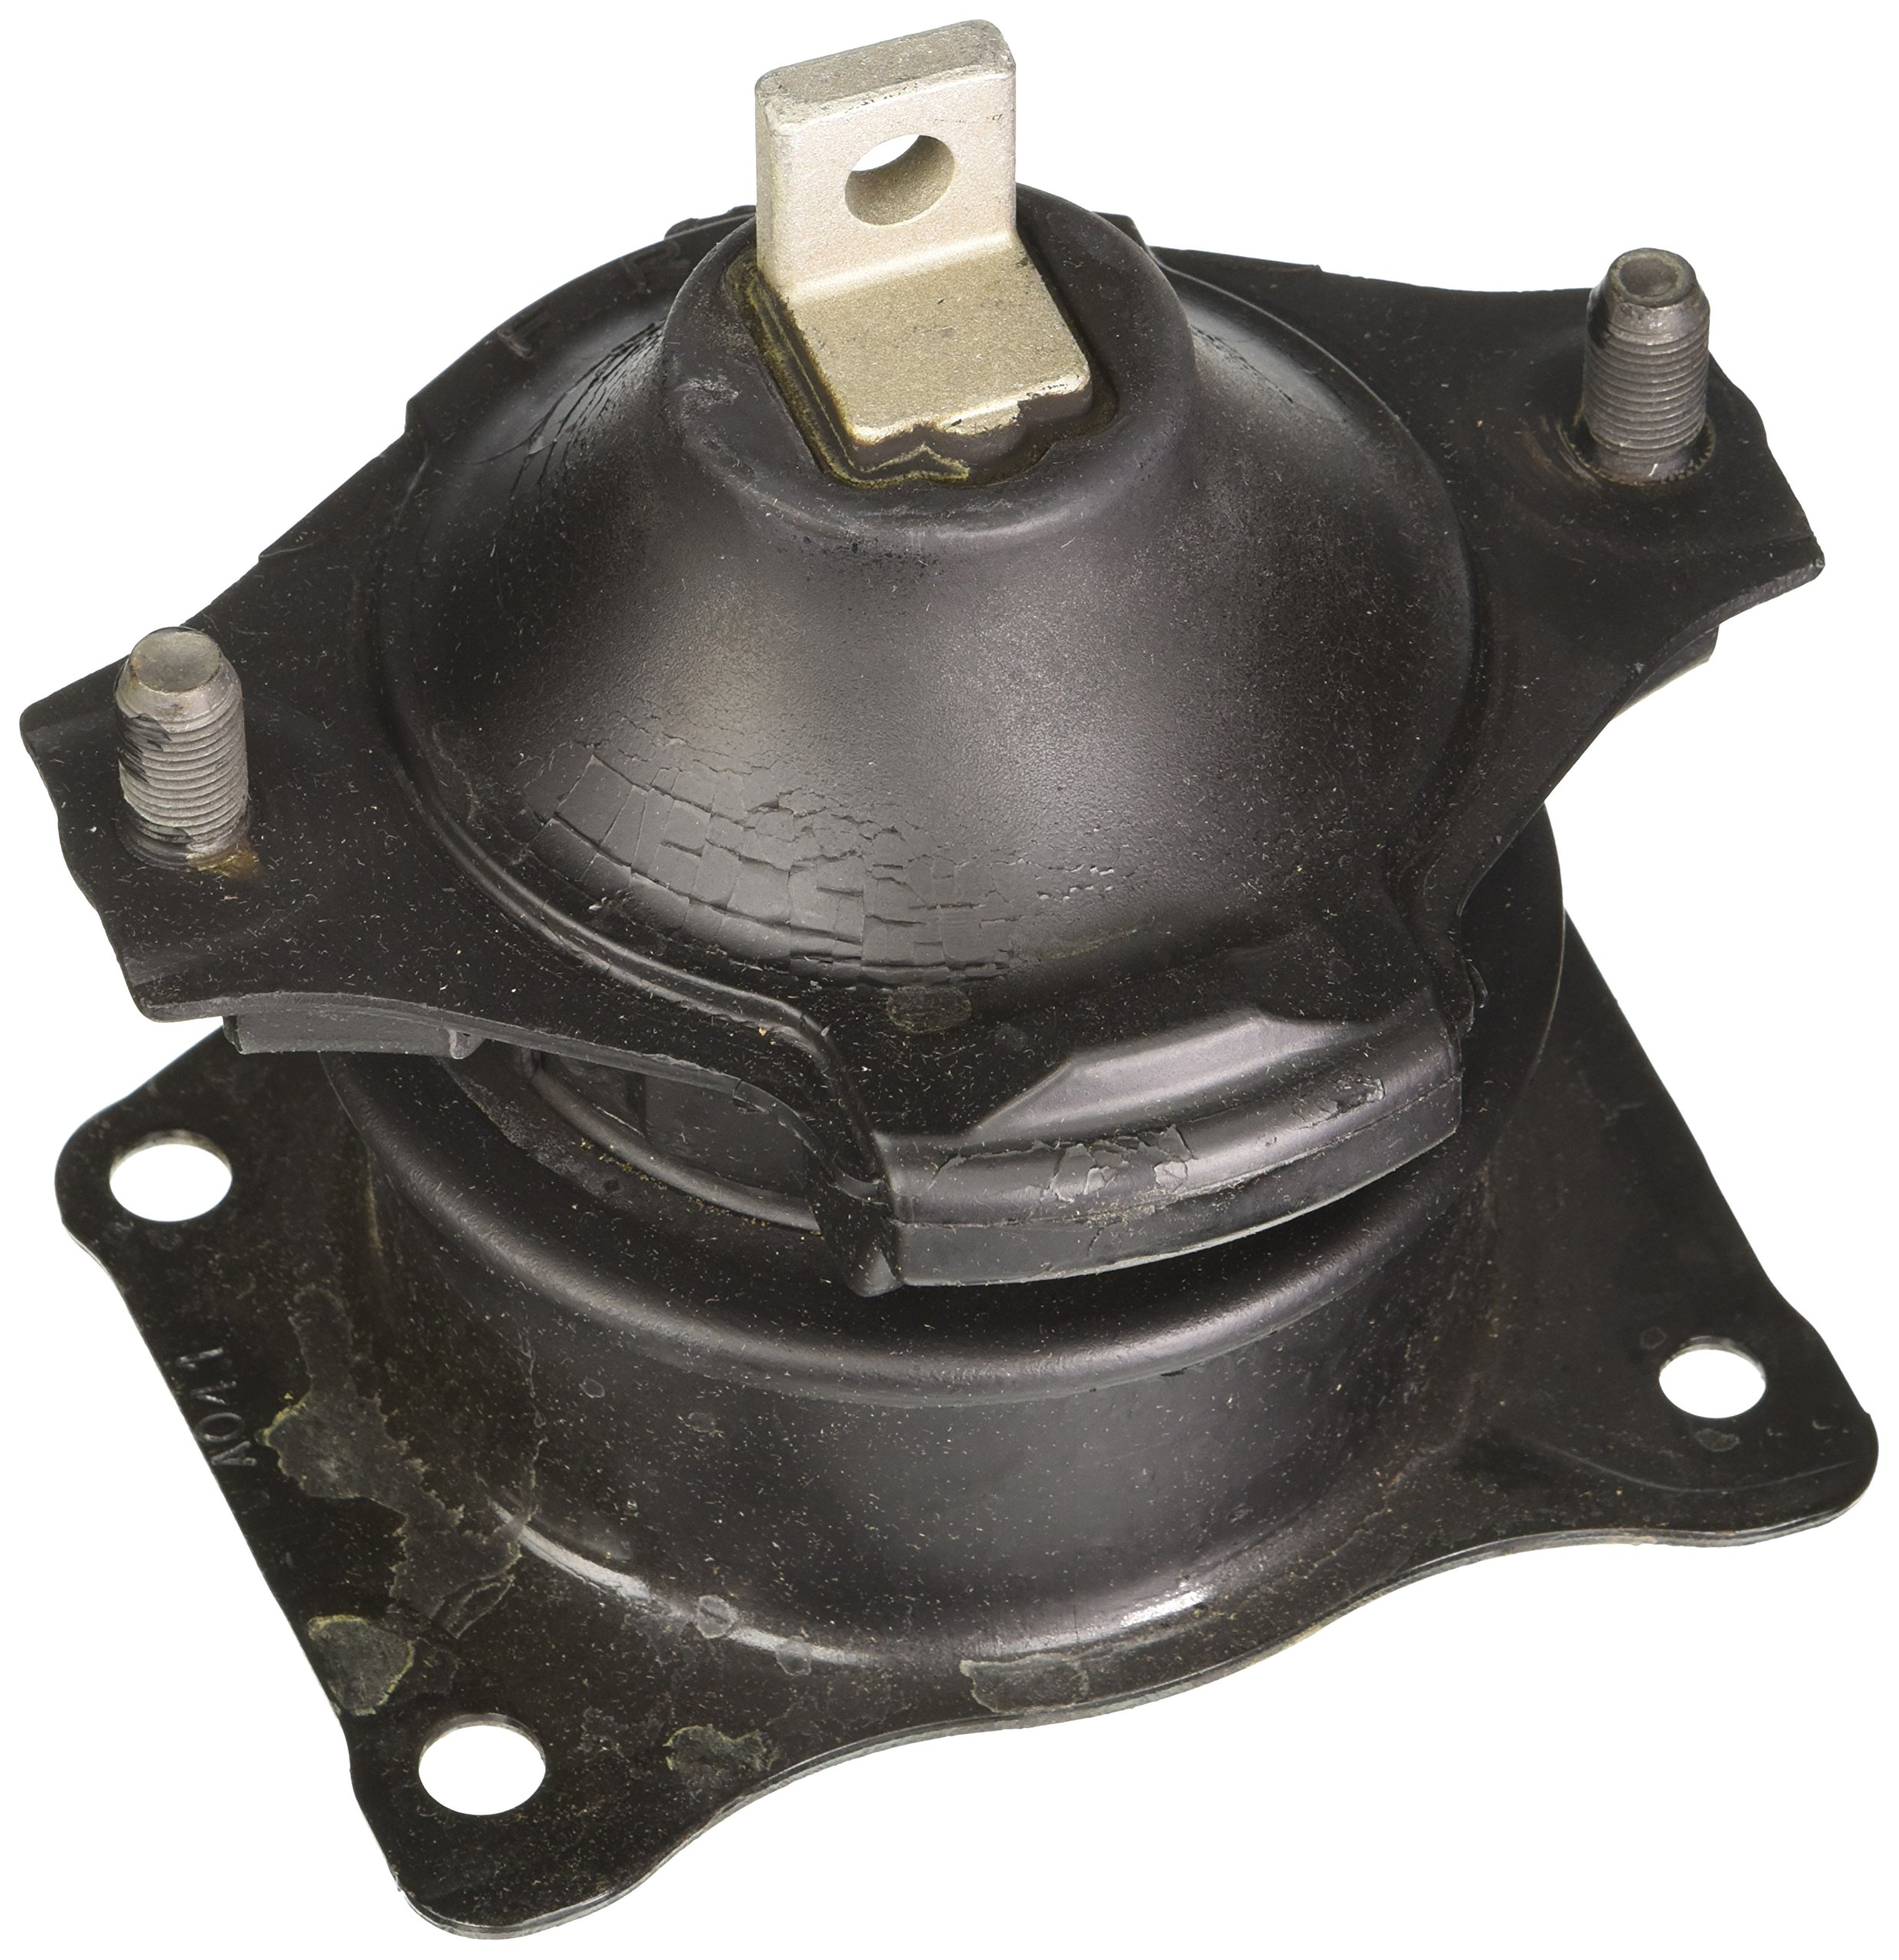 Honda Genuine 50830-SDA-A04 Engine Mounting Rubber Assembly, Front